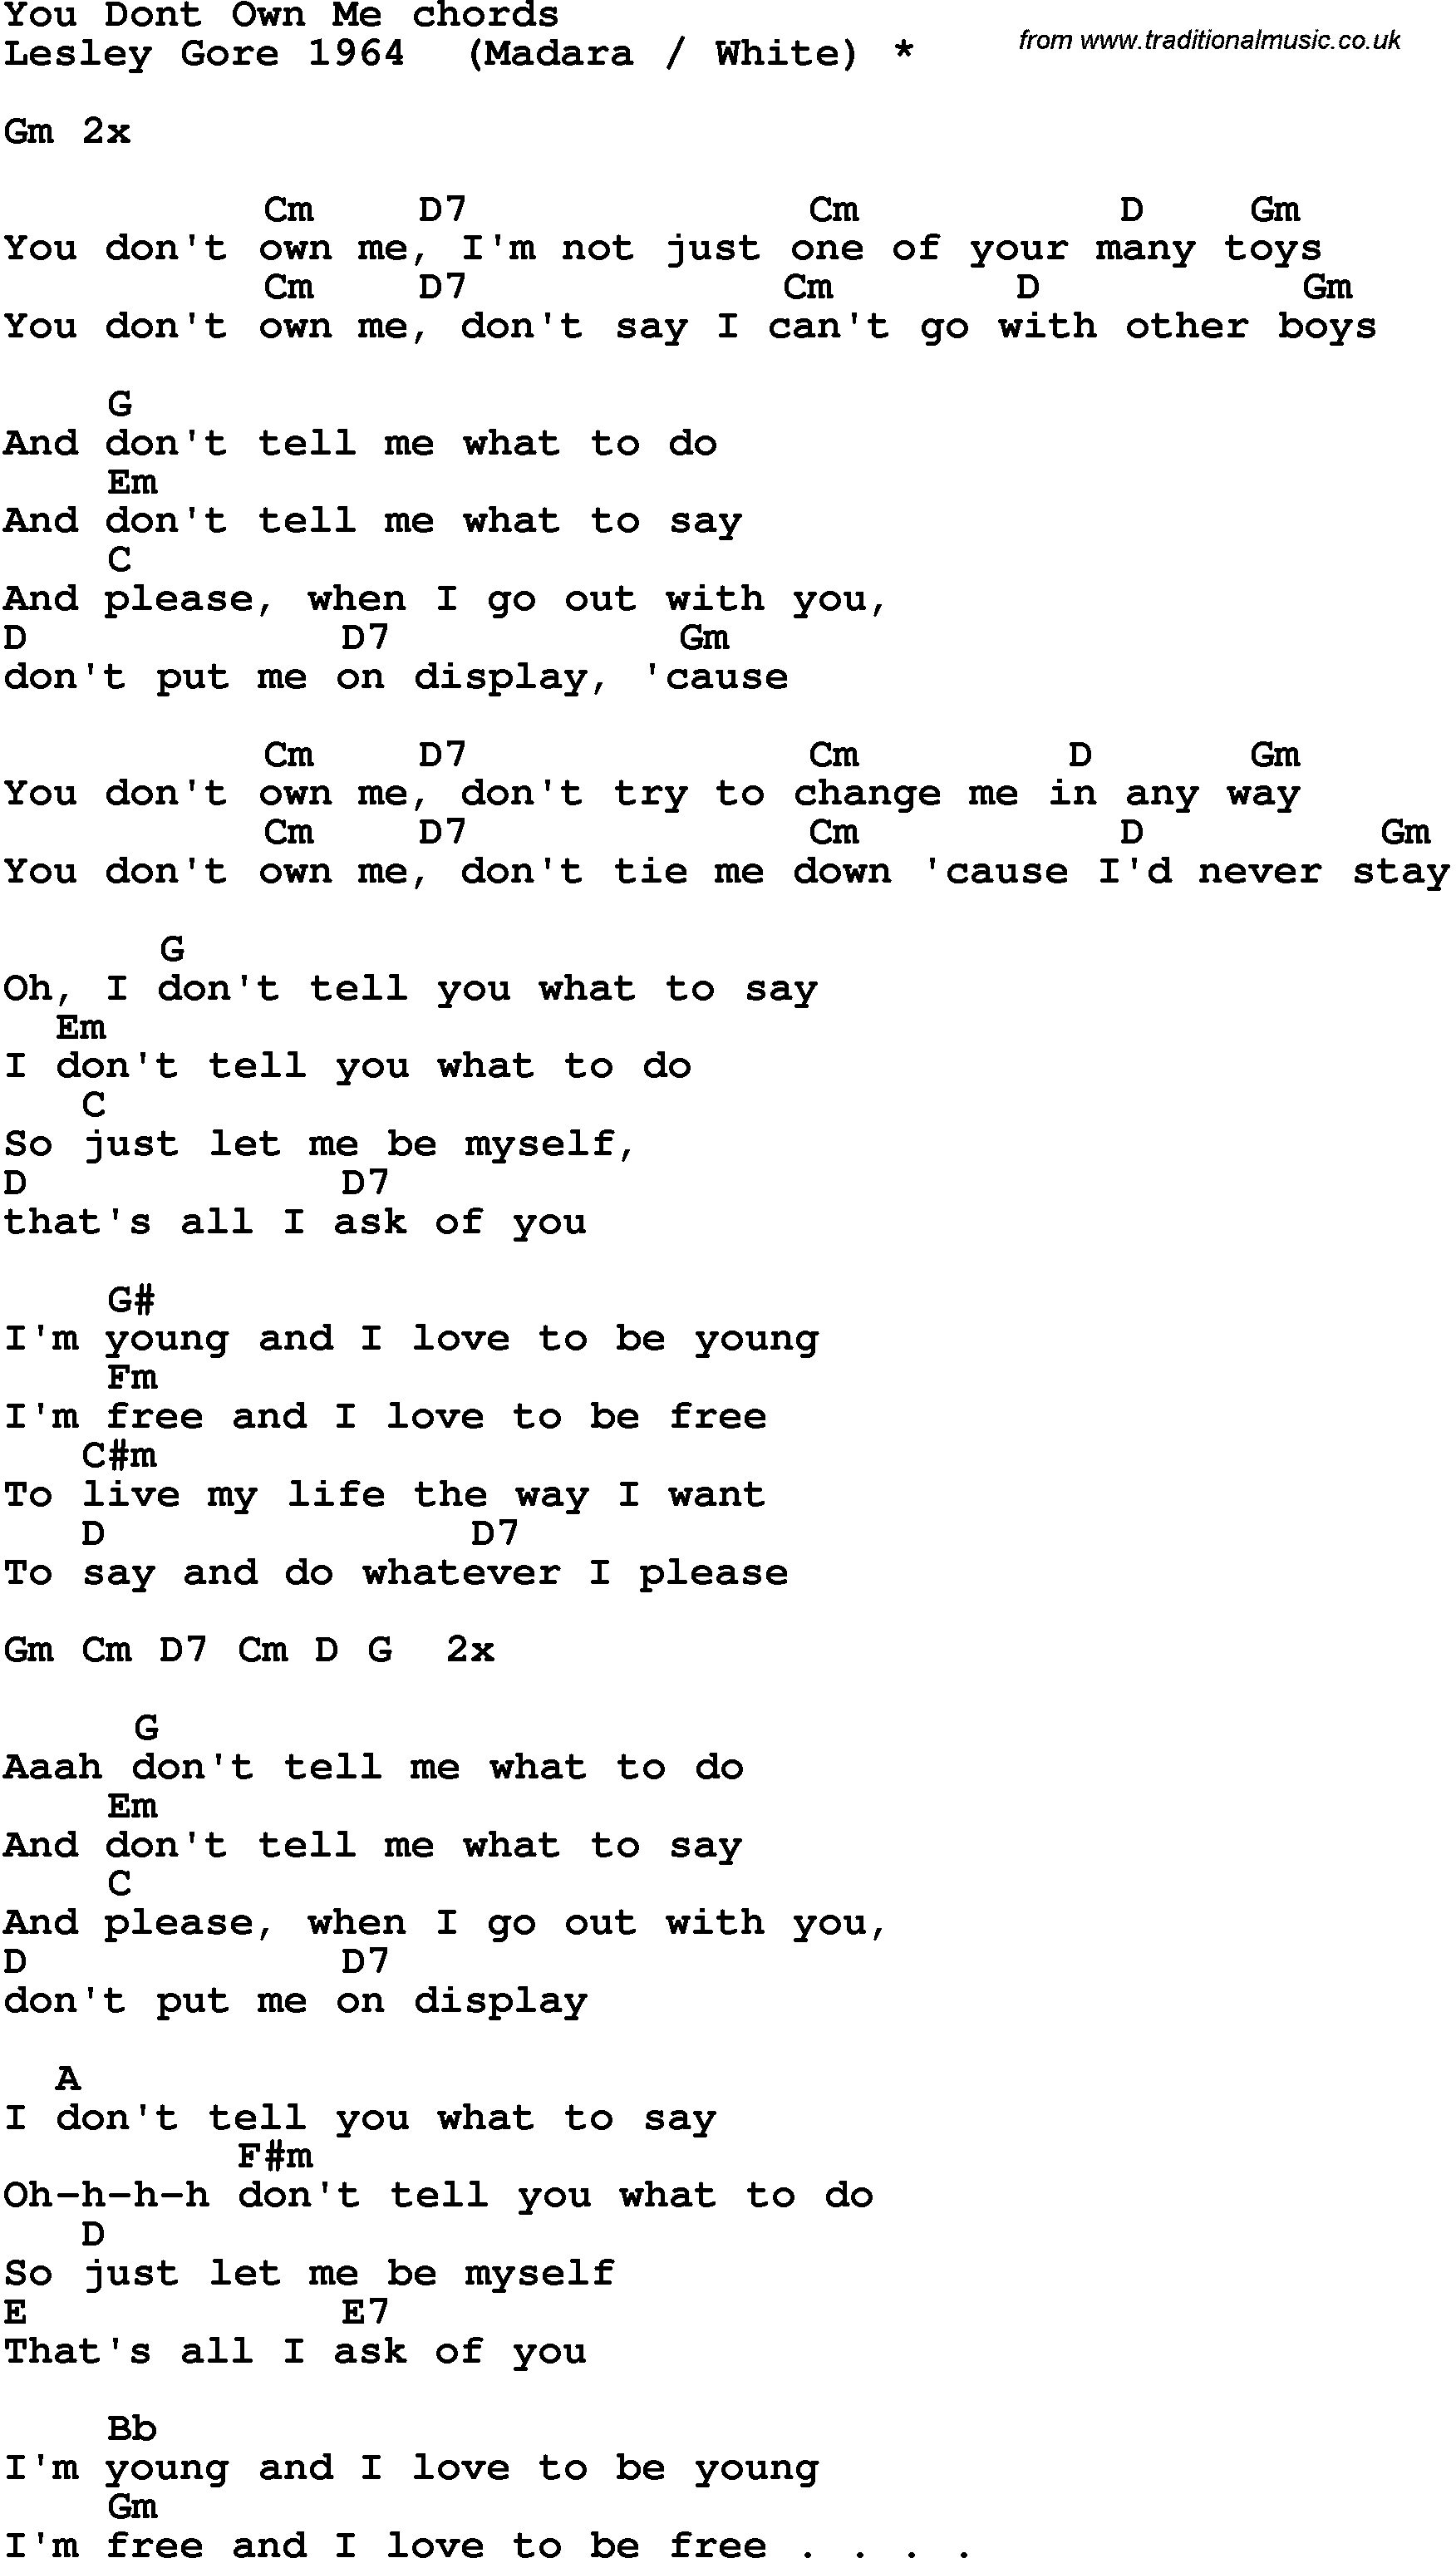 You Dont Own Me Song Lyrics With Guitar Chords For You Dont Own